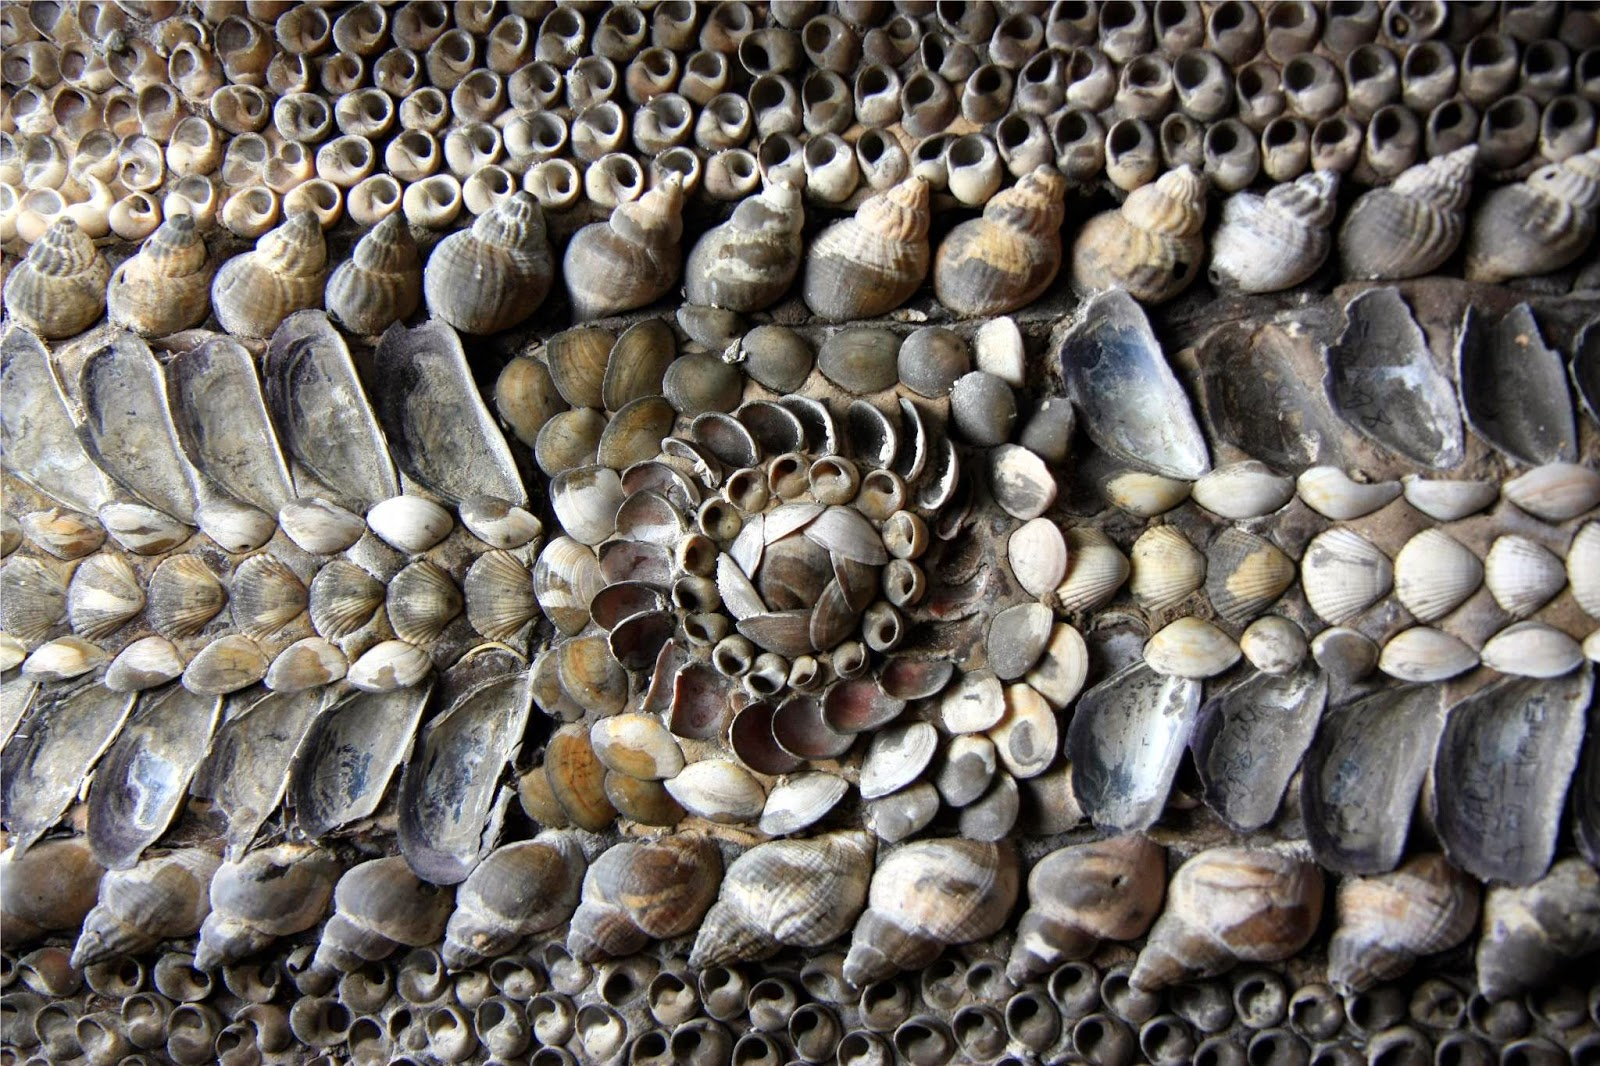 margate_shell_grotto_20.jpg